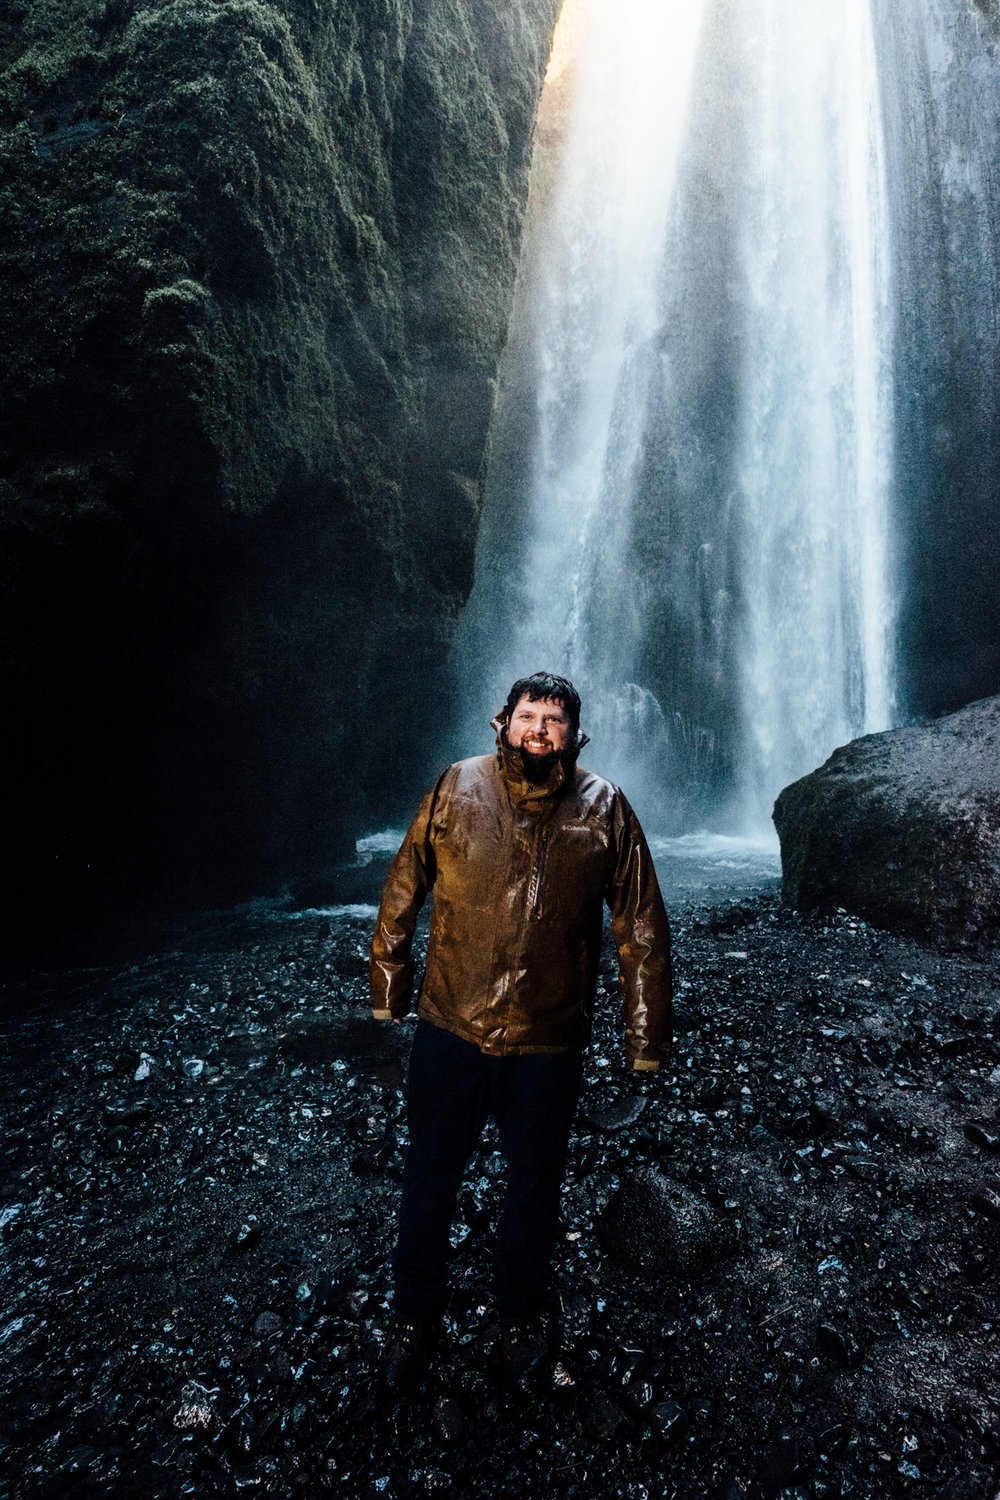 Jake posing in front of Gljufrabui! This was one of our favorite hidden gems in Iceland - this waterfall is tucked behind a rock face and not visible from the front. It's an easy hike through a shallow stream to get into the clearing to view the waterfall - totally worth it! Be sure to wear waterproof clothing if you want pics, though, you'll definitely get soaked.